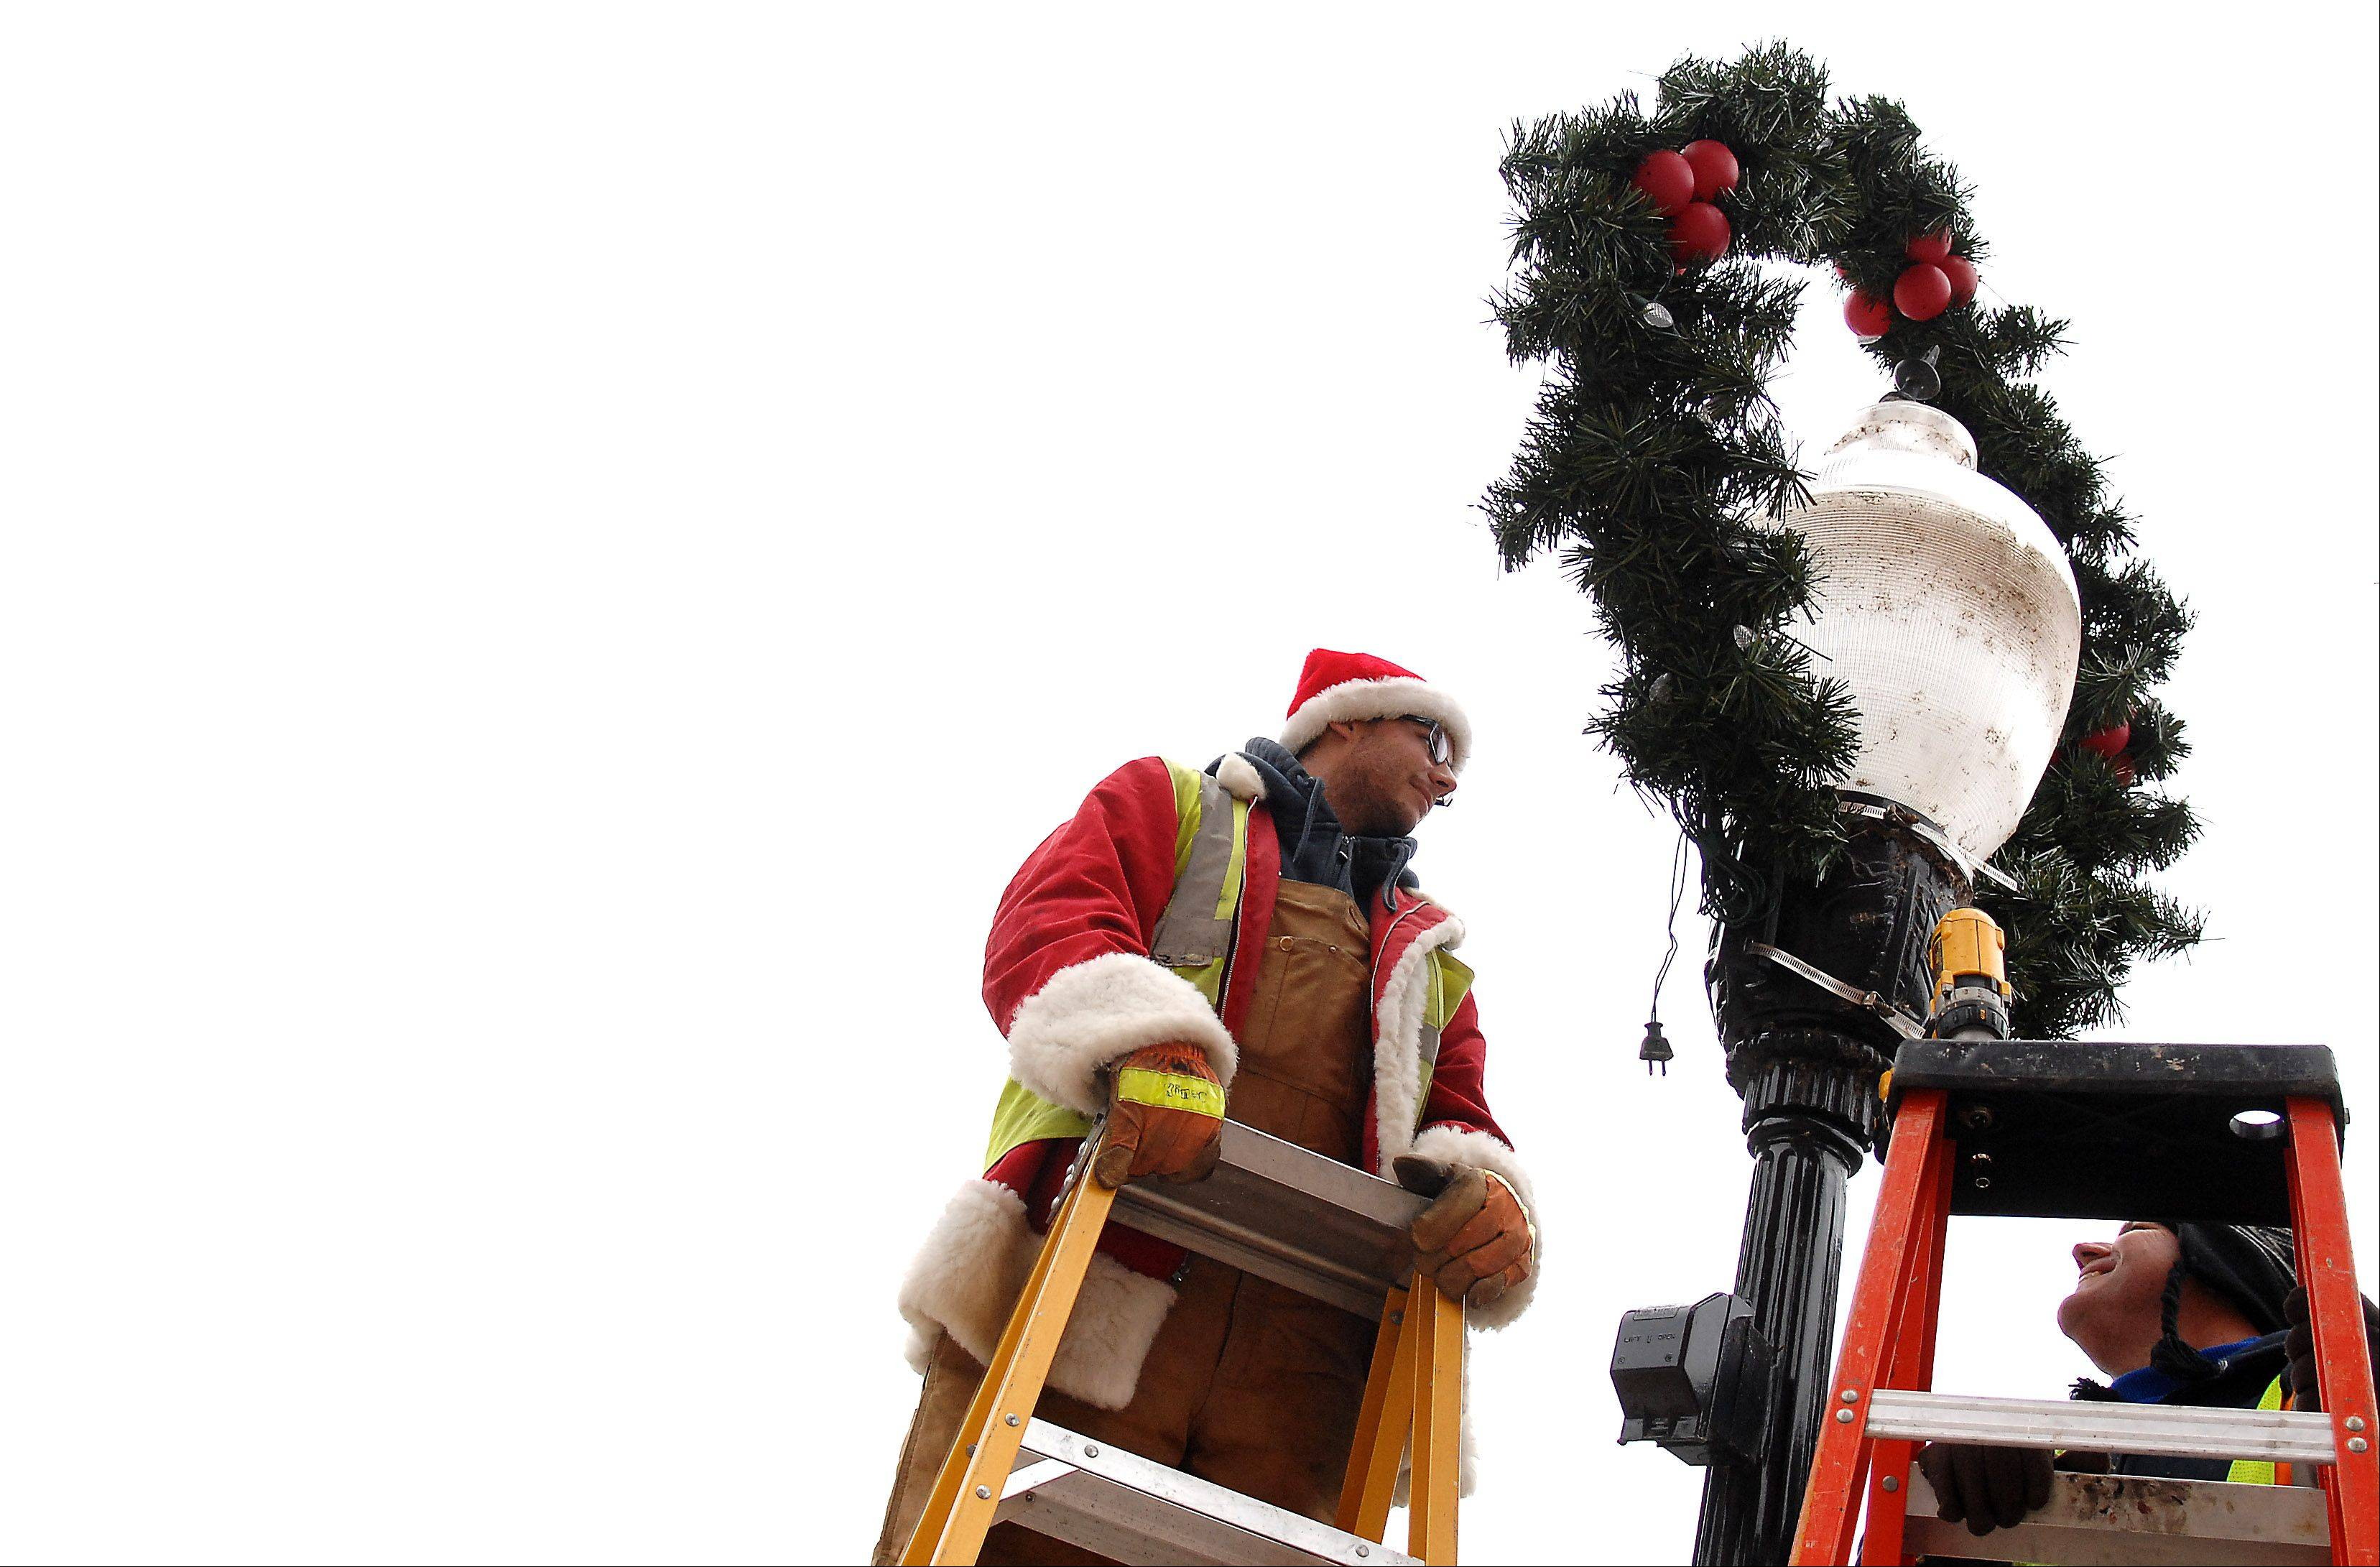 Village of Algonquin public works employee Matthew Seveska, dressed in a leftover Santa coat and hat, and Mike Schaffter put up wreaths Tuesday morning throughout the downtown area. They�re decorating 18 light poles total with wreaths, garland and bows.